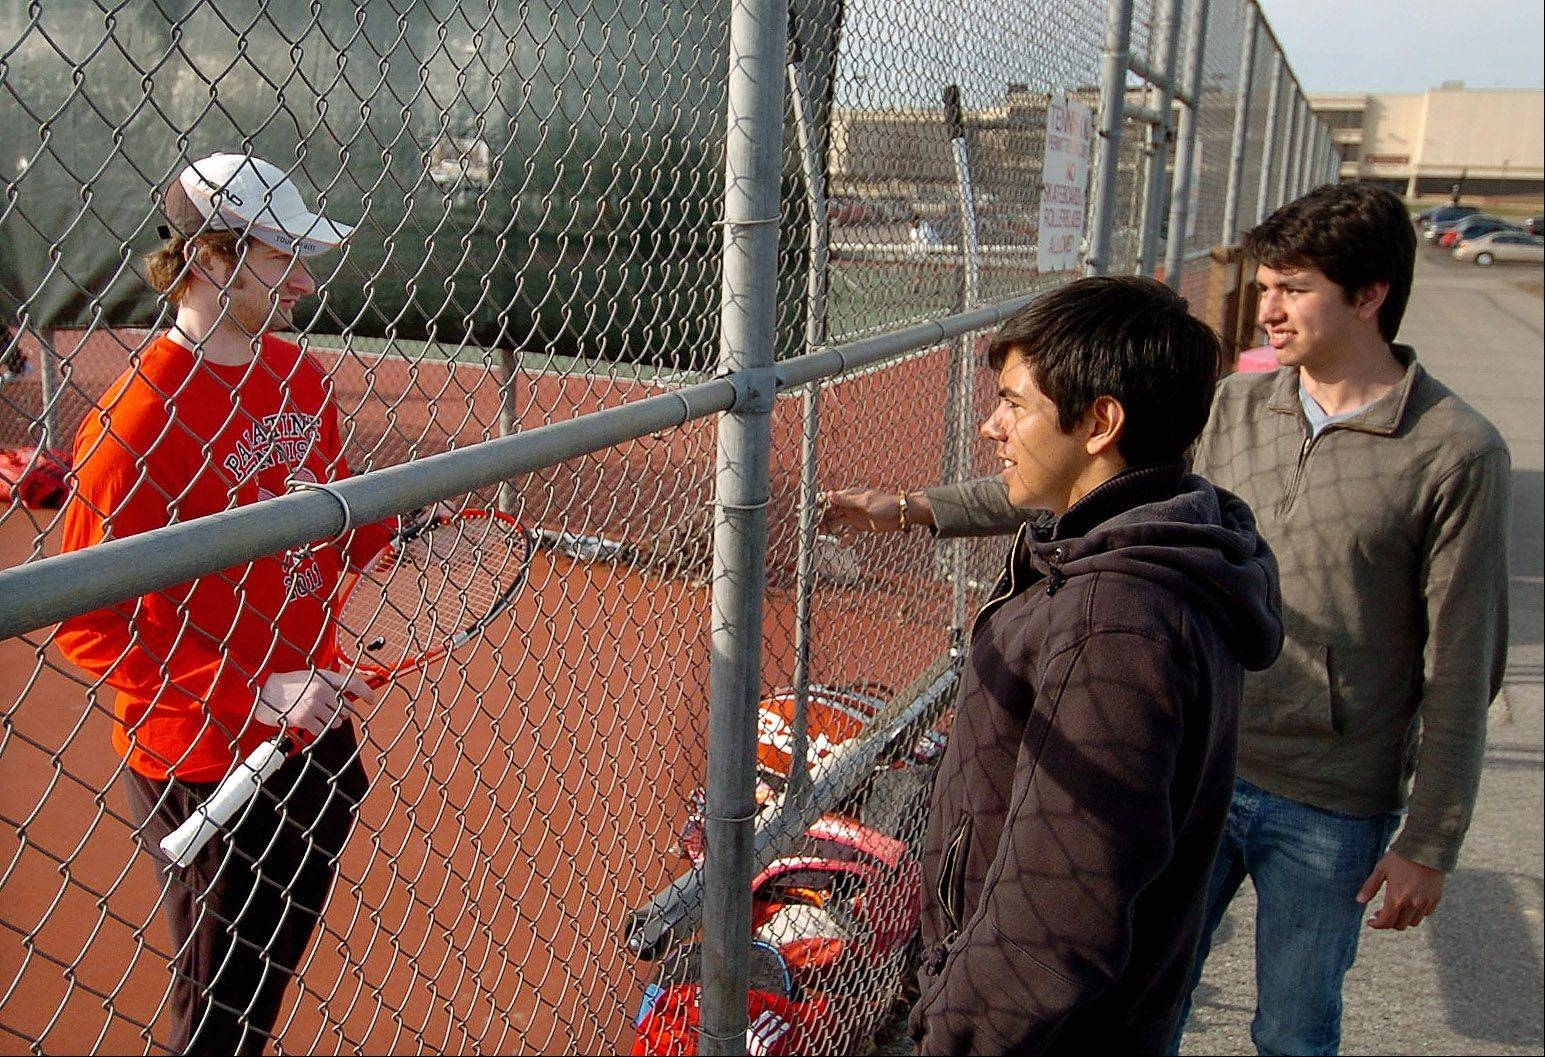 Rafael and Carlos Robles visit with Palatine tennis coach Jim Lange.